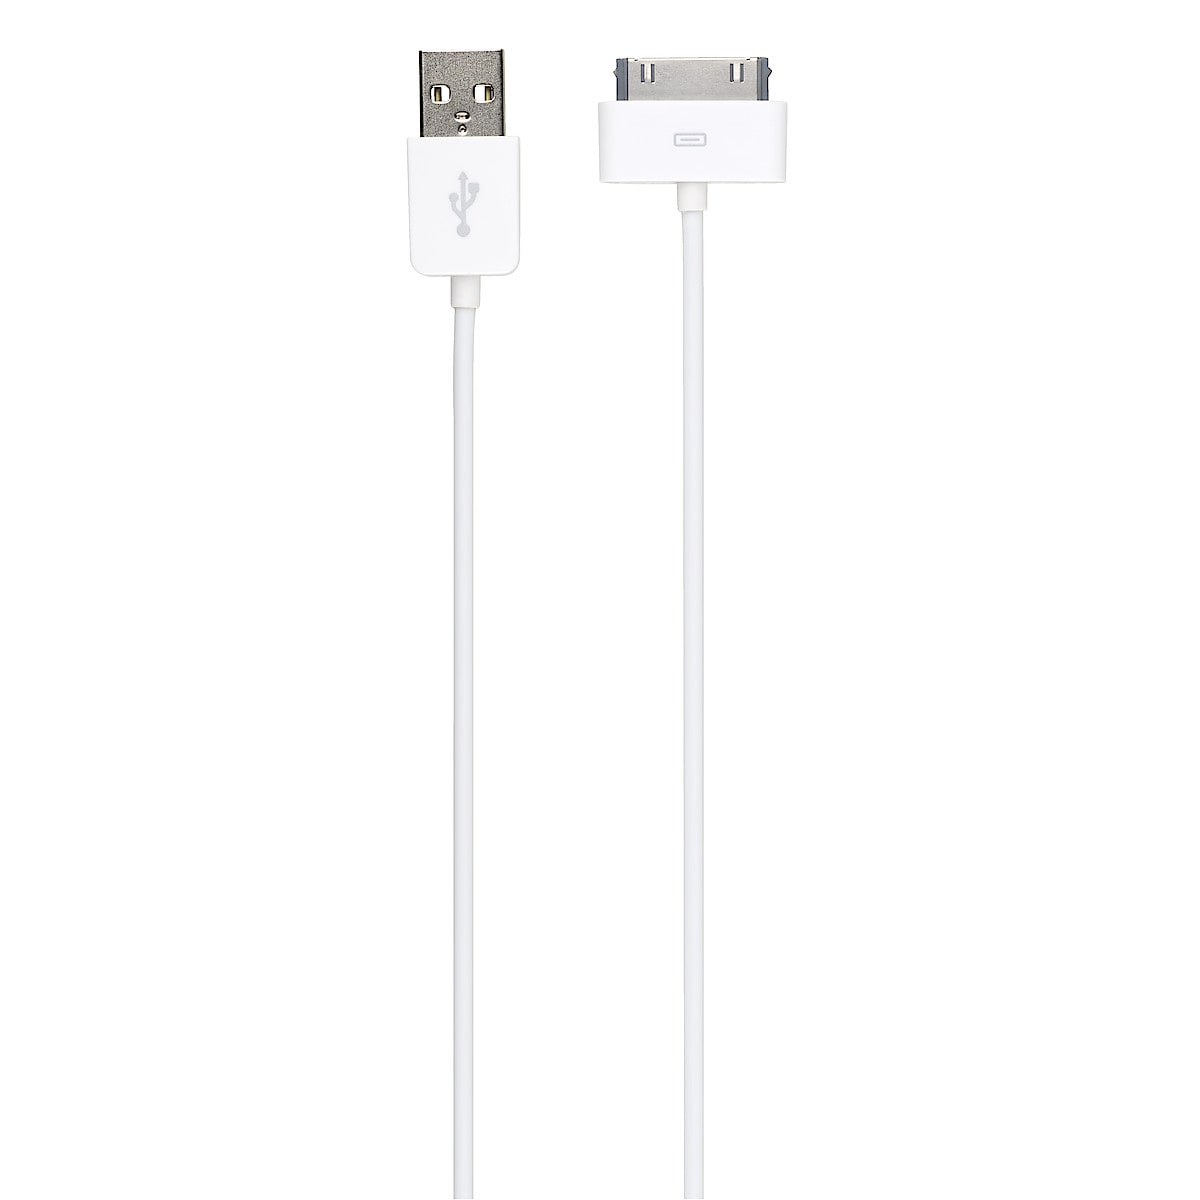 Charger Cable for iPhone/iPad/iPod, Exibel